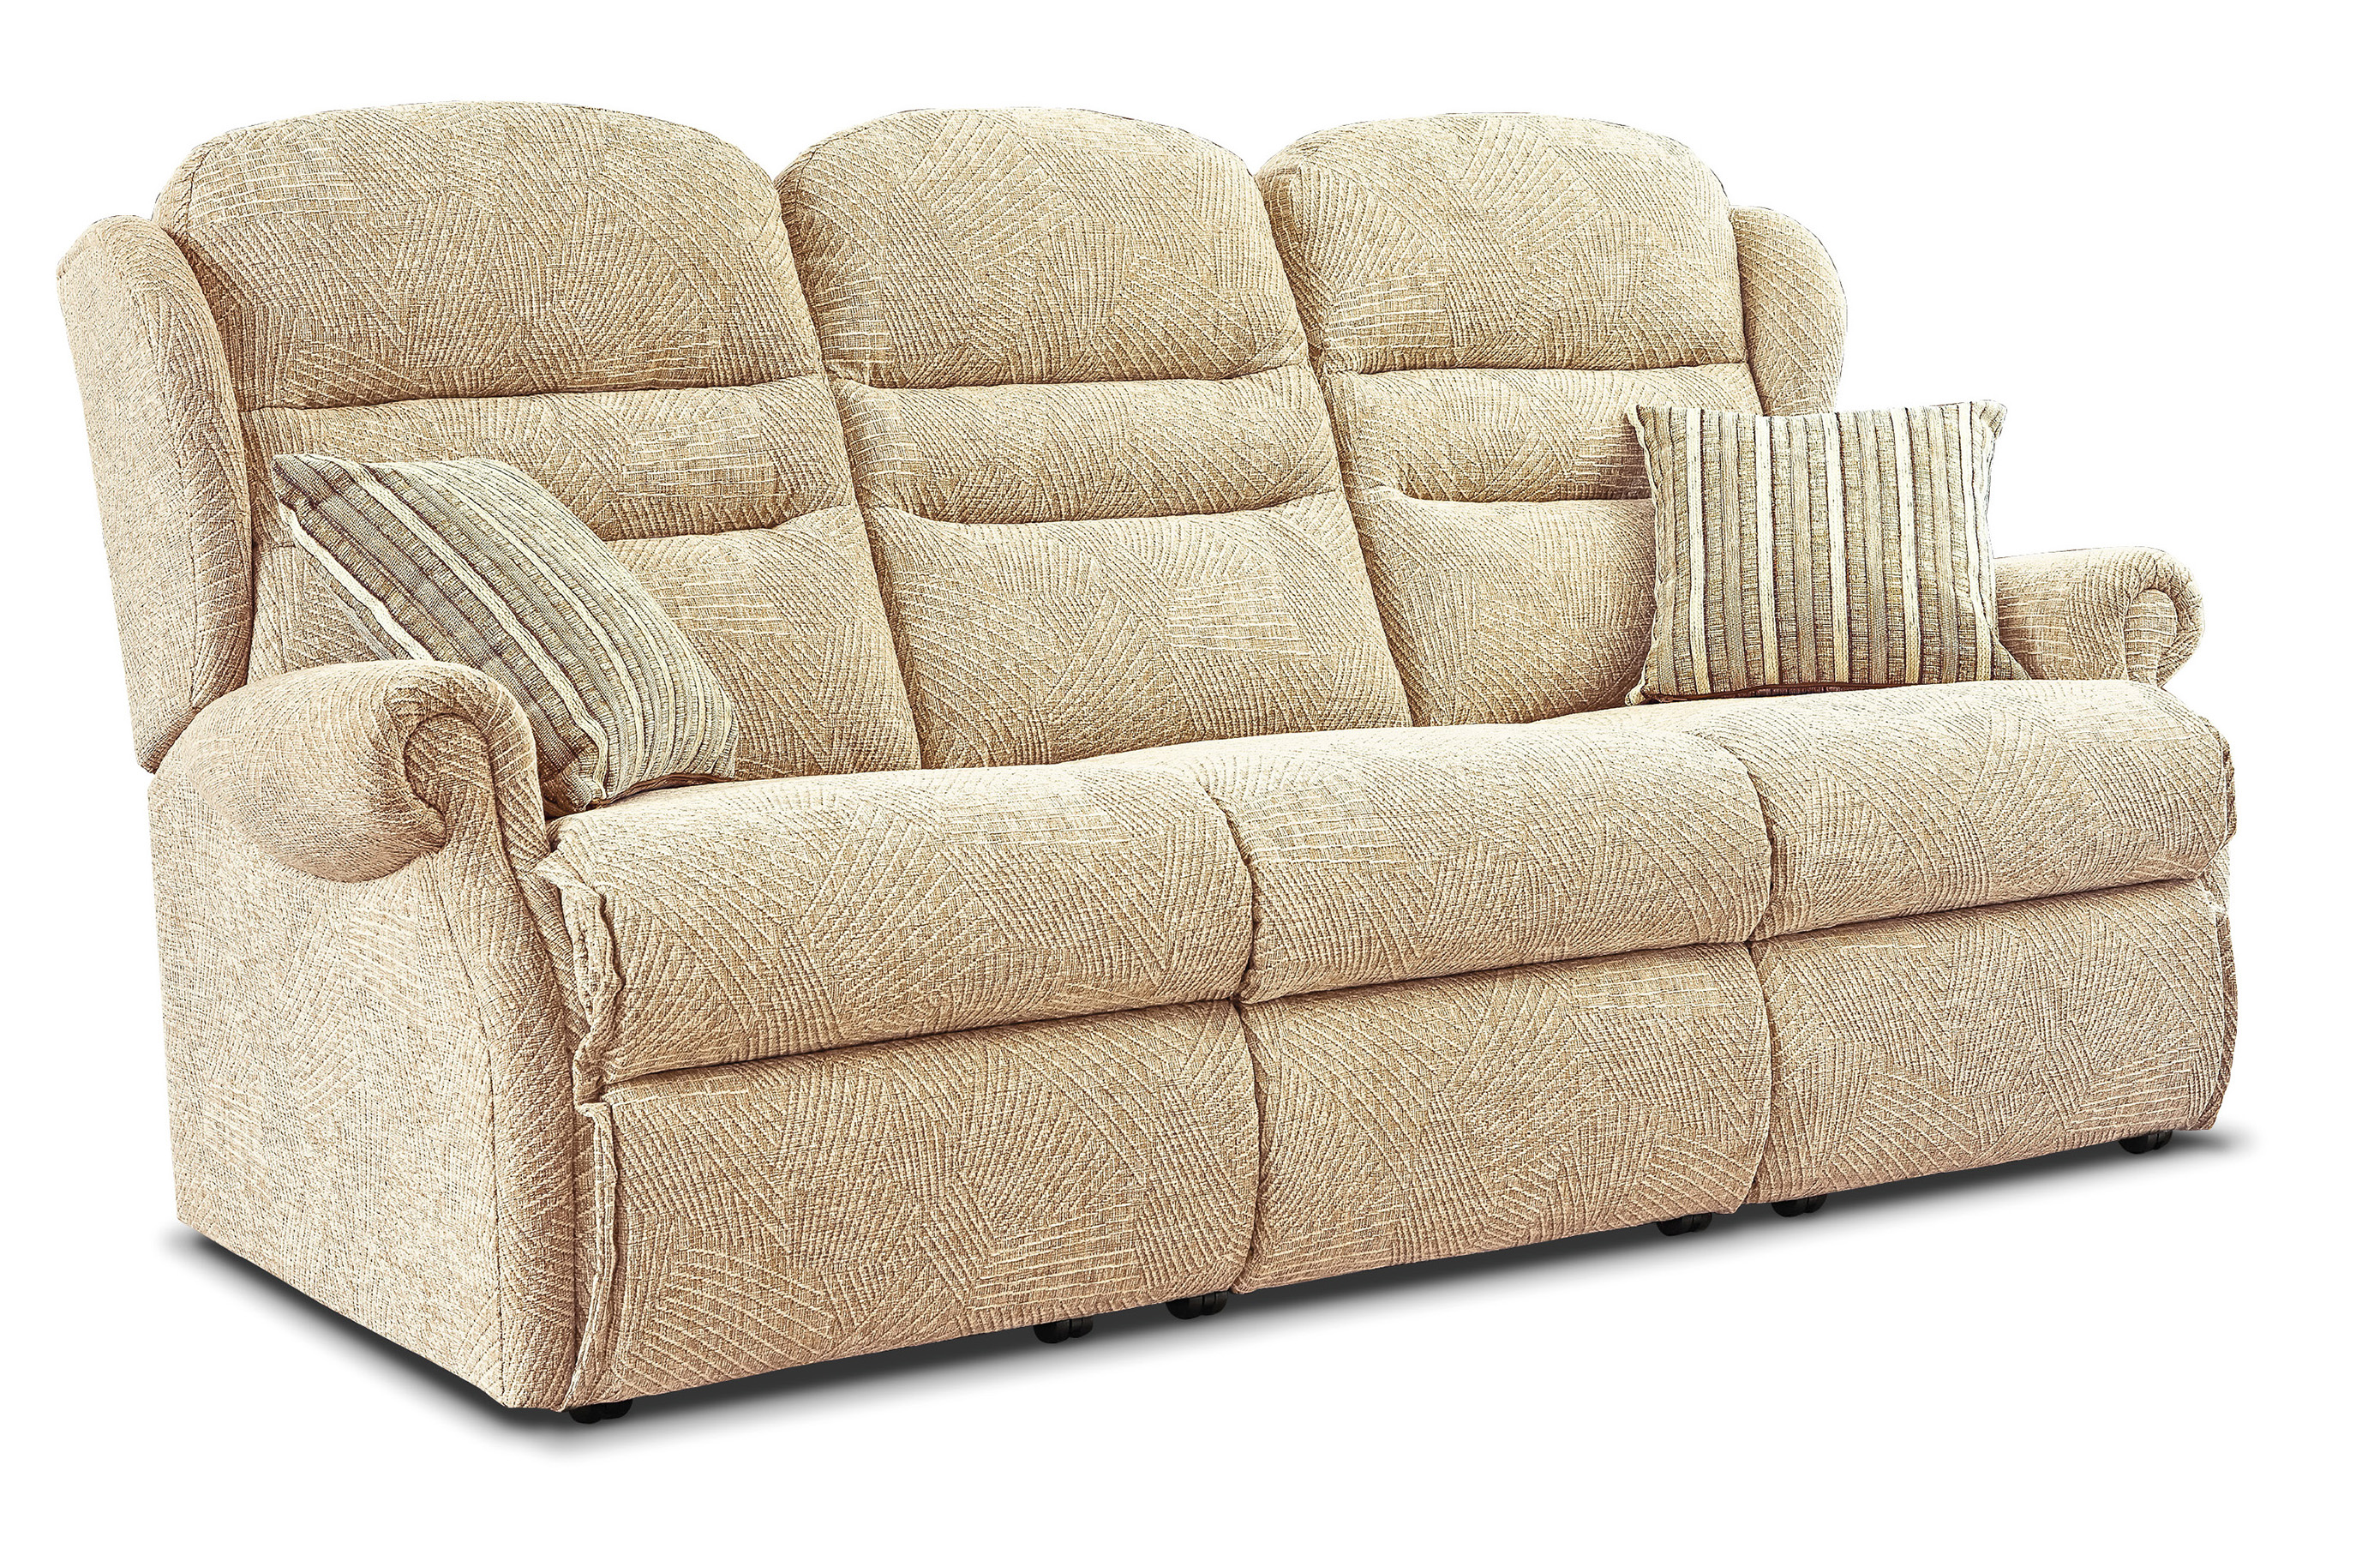 Ashford Fixed 3 seater sofa